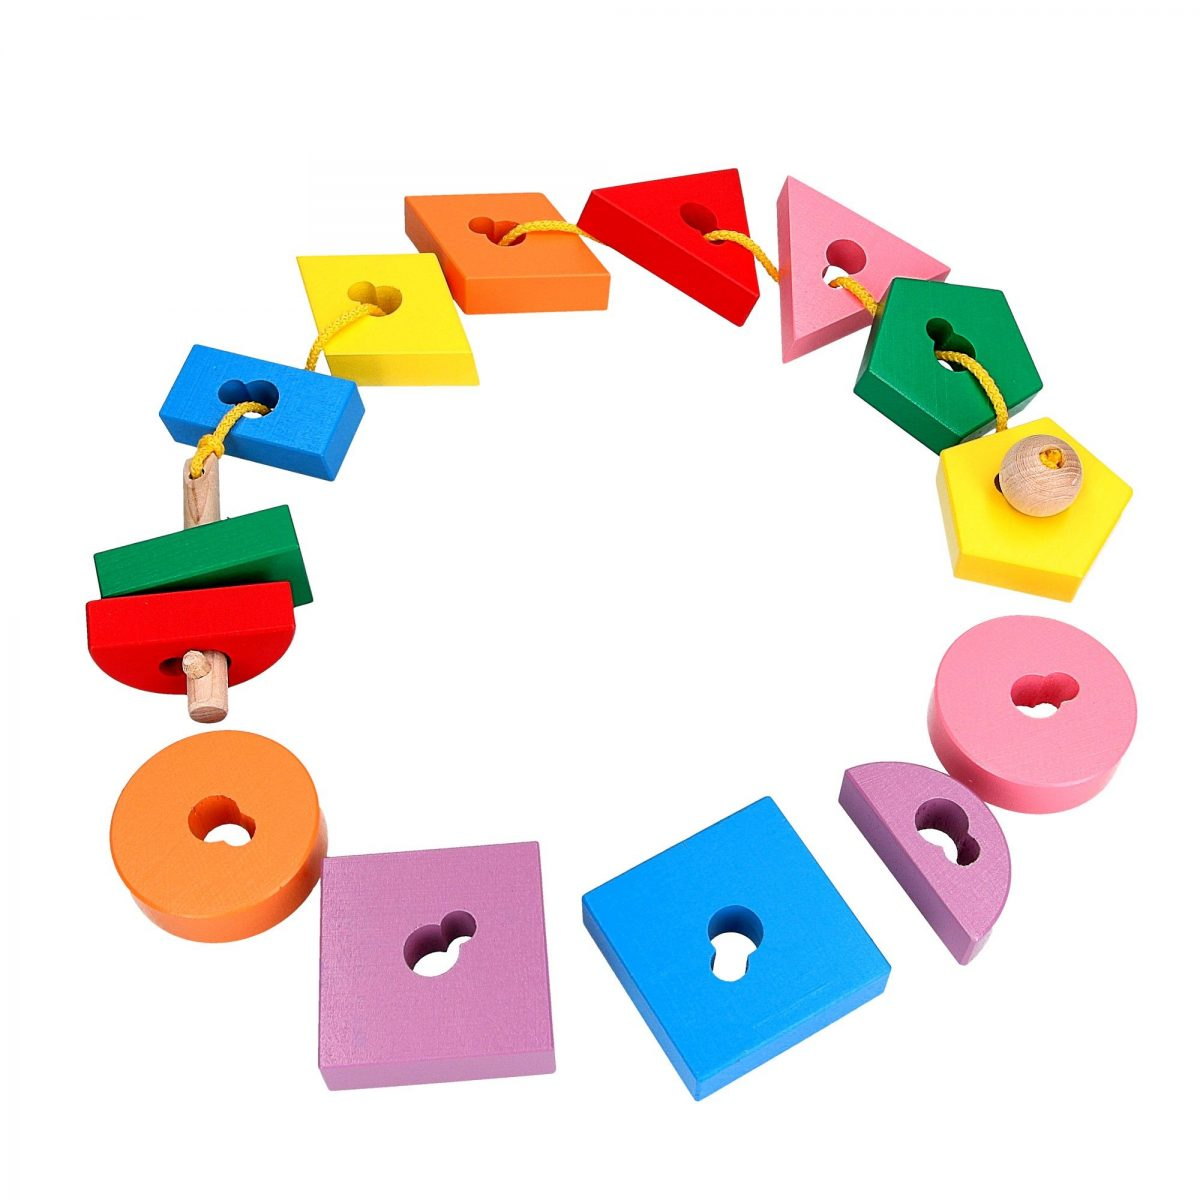 wooden lacing puzzle toy key and shapes with keyholes for the kids 2 years and older